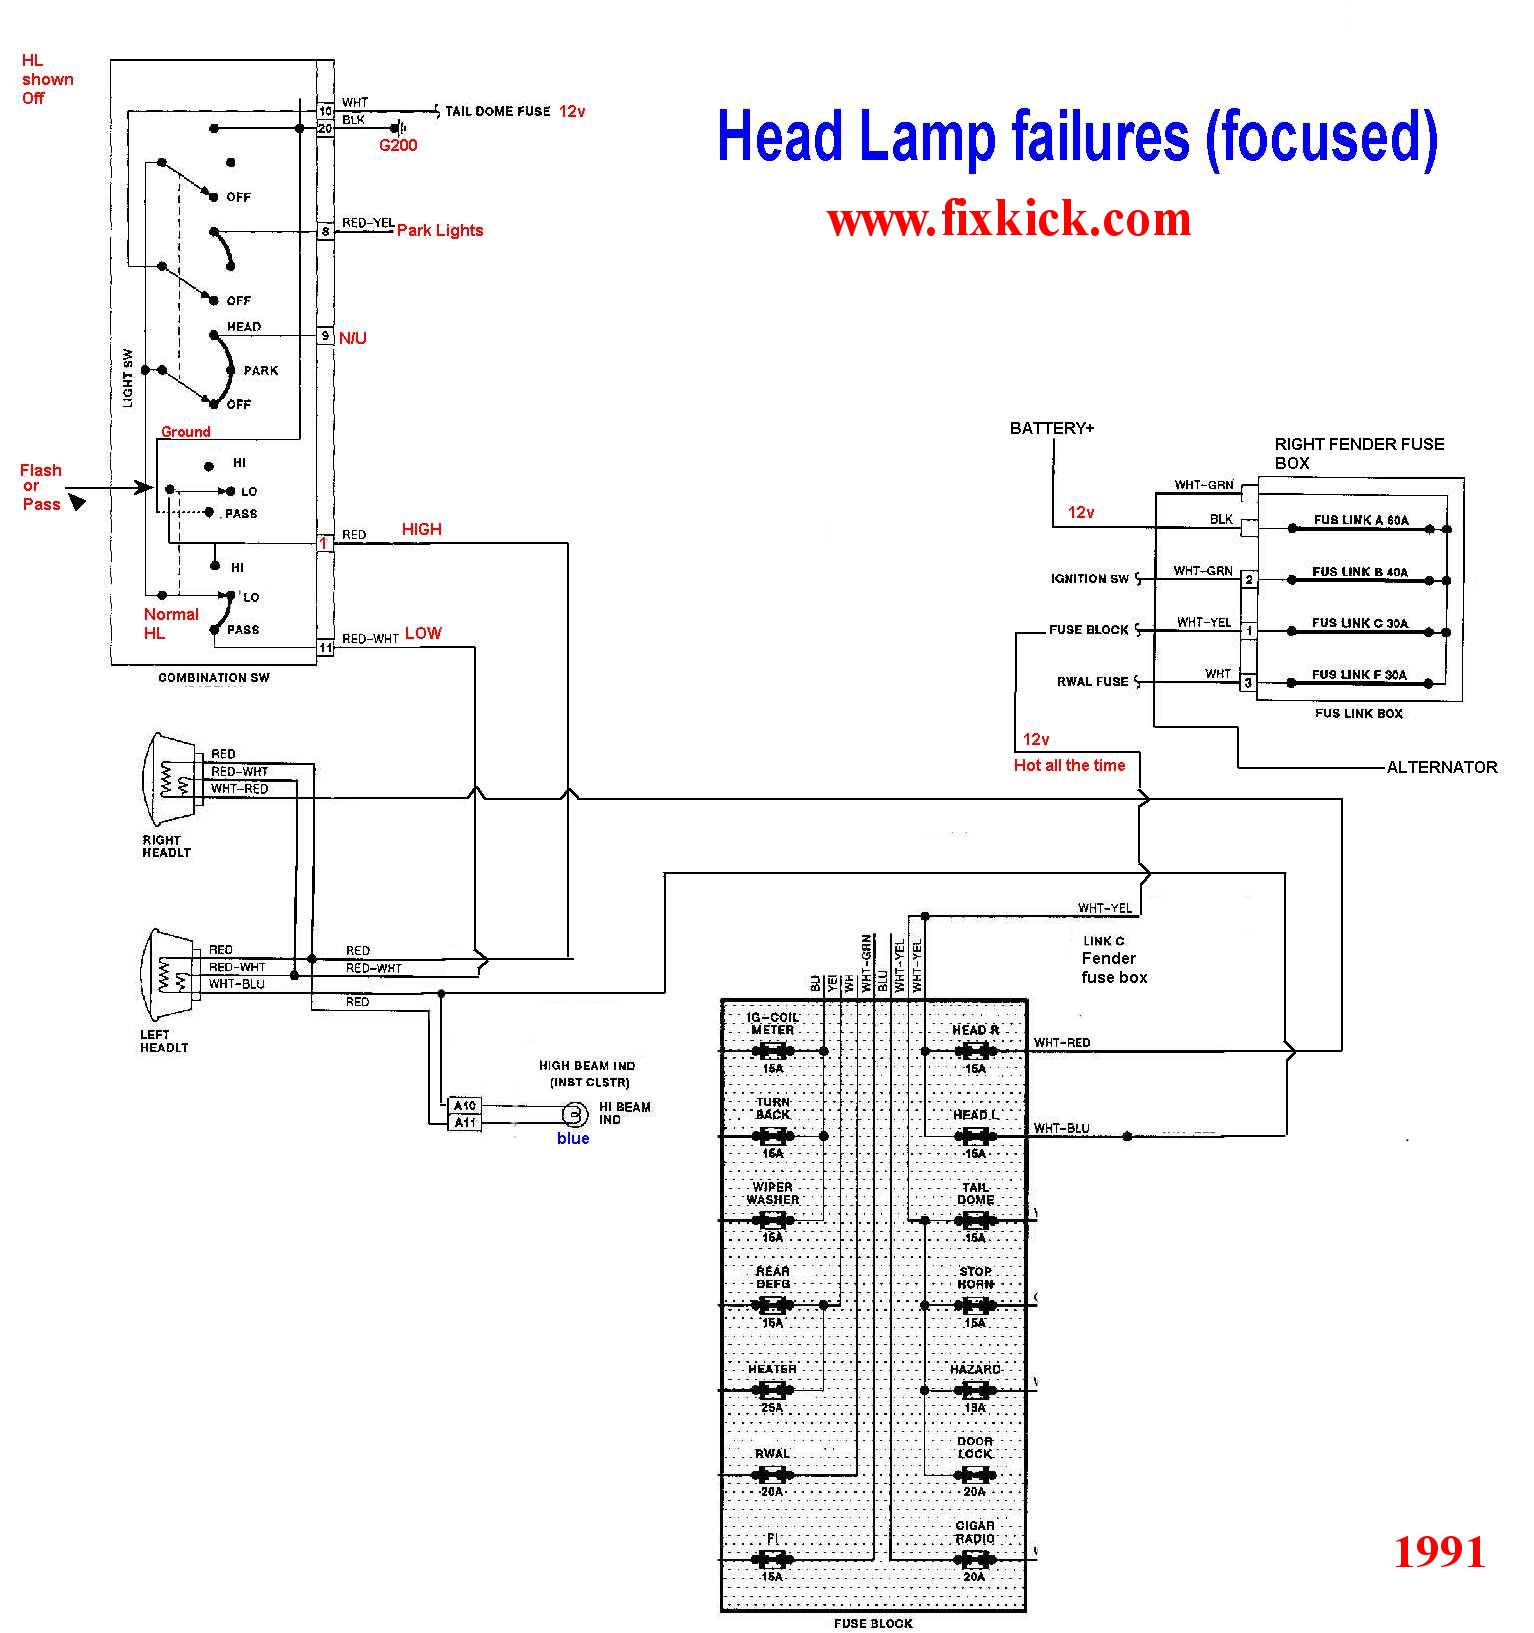 1994 Geo Tracker Electrical Wiring Diagram | Wiring Diagram  Geo Tracker Wiring Diagram on